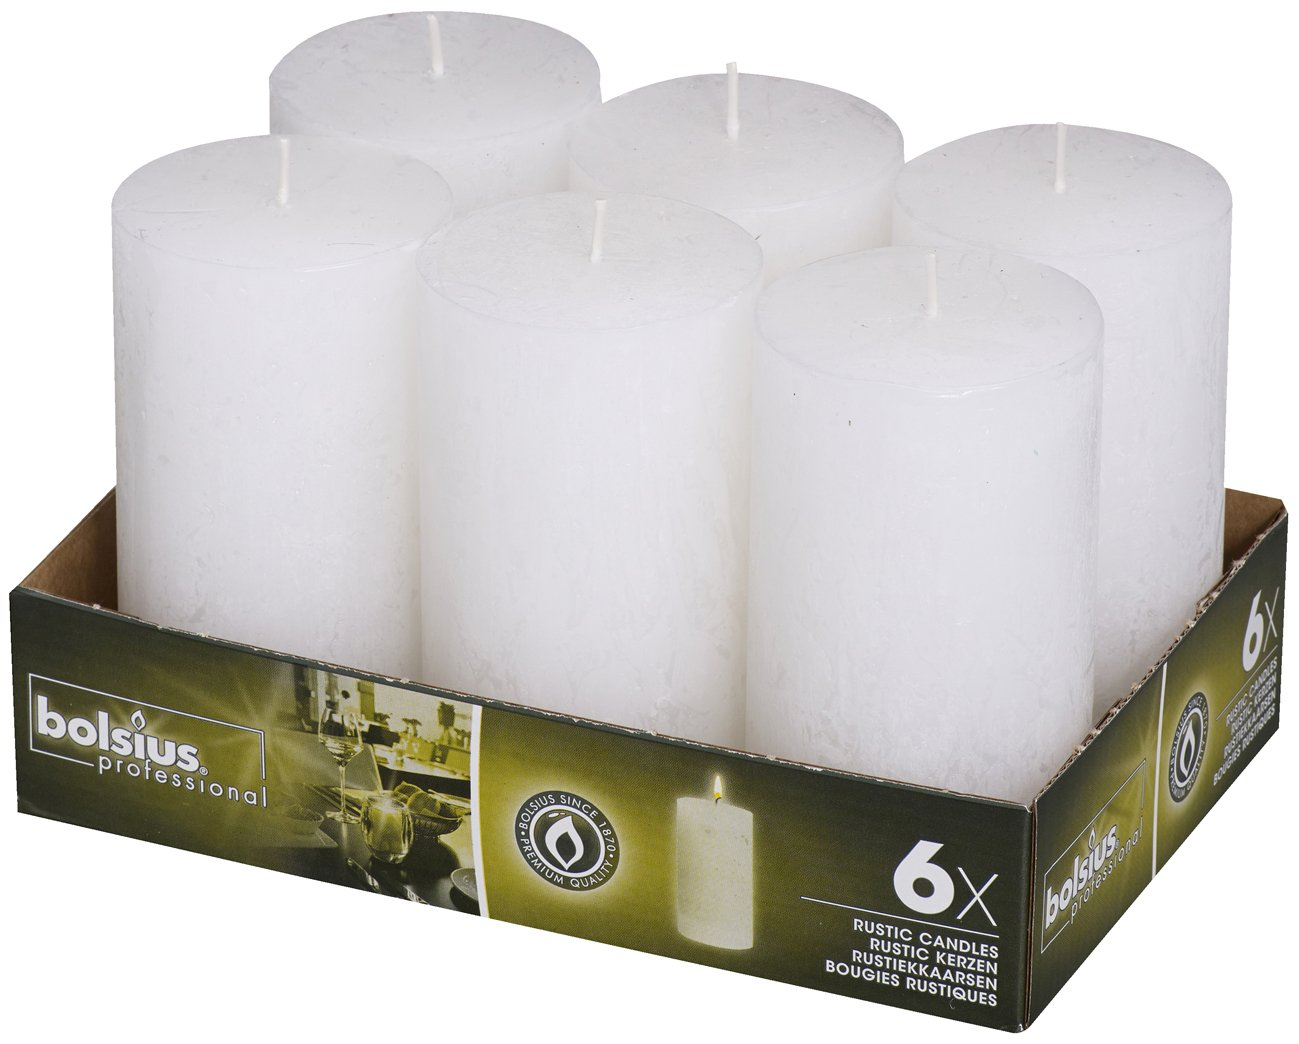 Bolsius 6 Pk. Rustic White Pillar Party Wedding Candles 130 X 68mm (Aprox. 5 X 2.75 Inches) by Bolsius